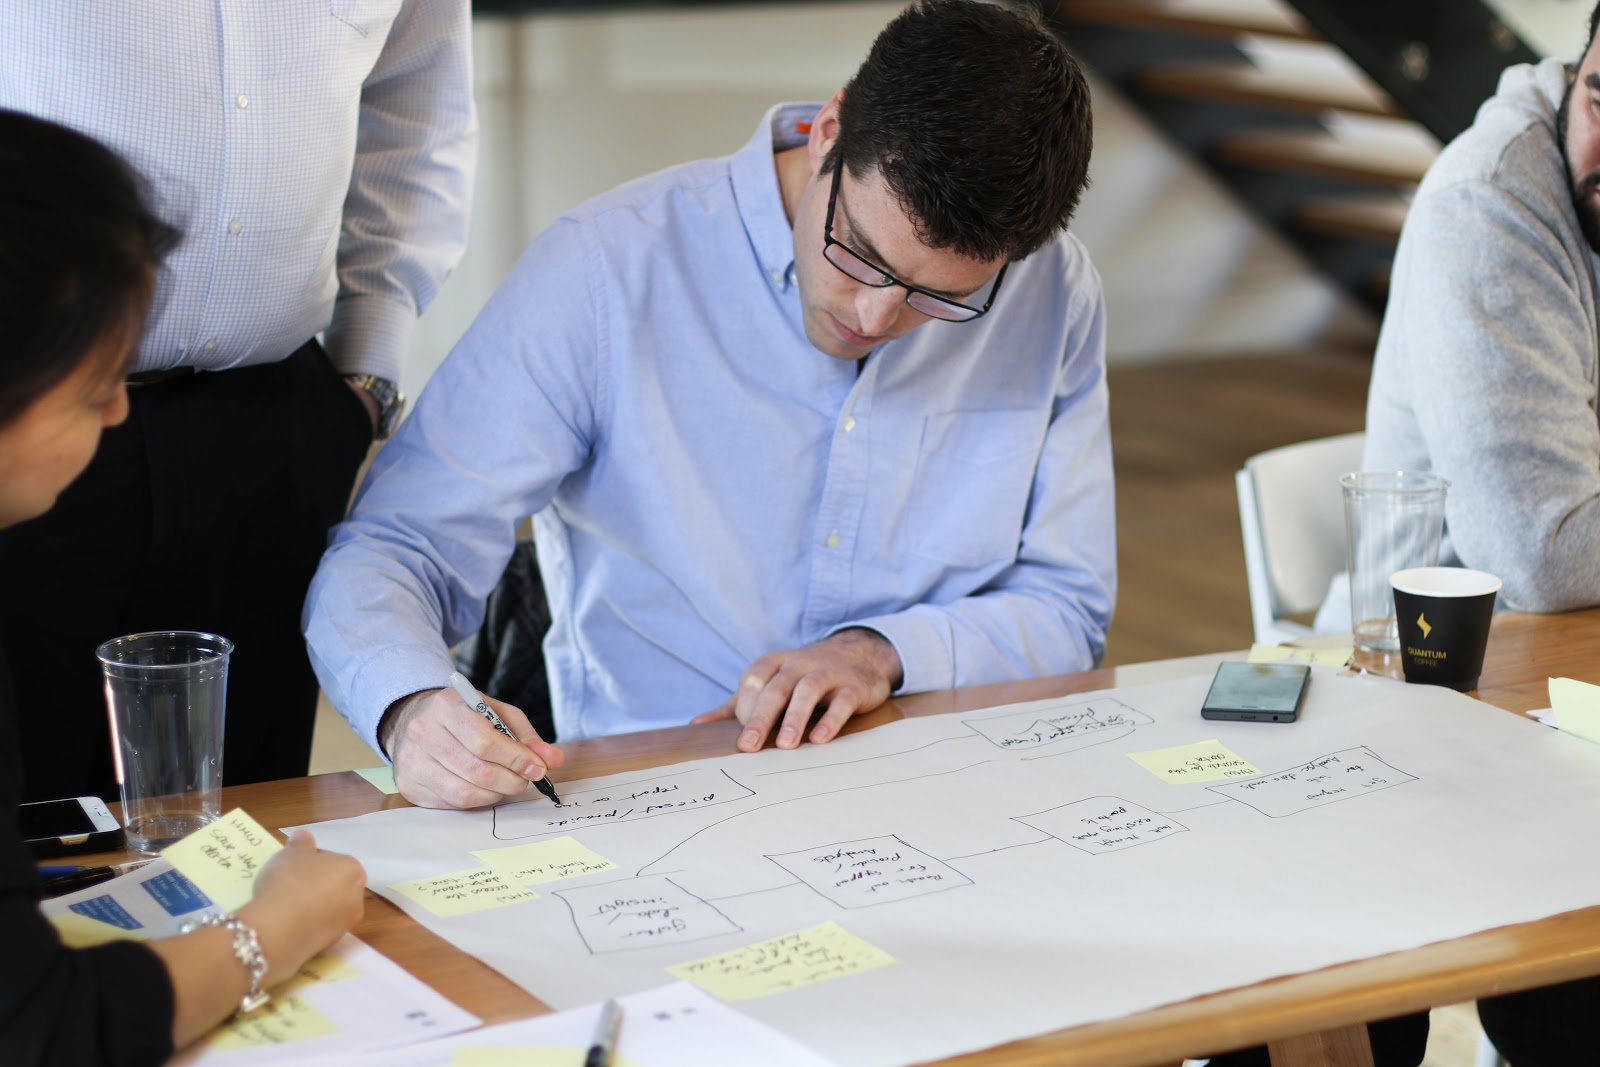 Man maps out ideas on paper with a team